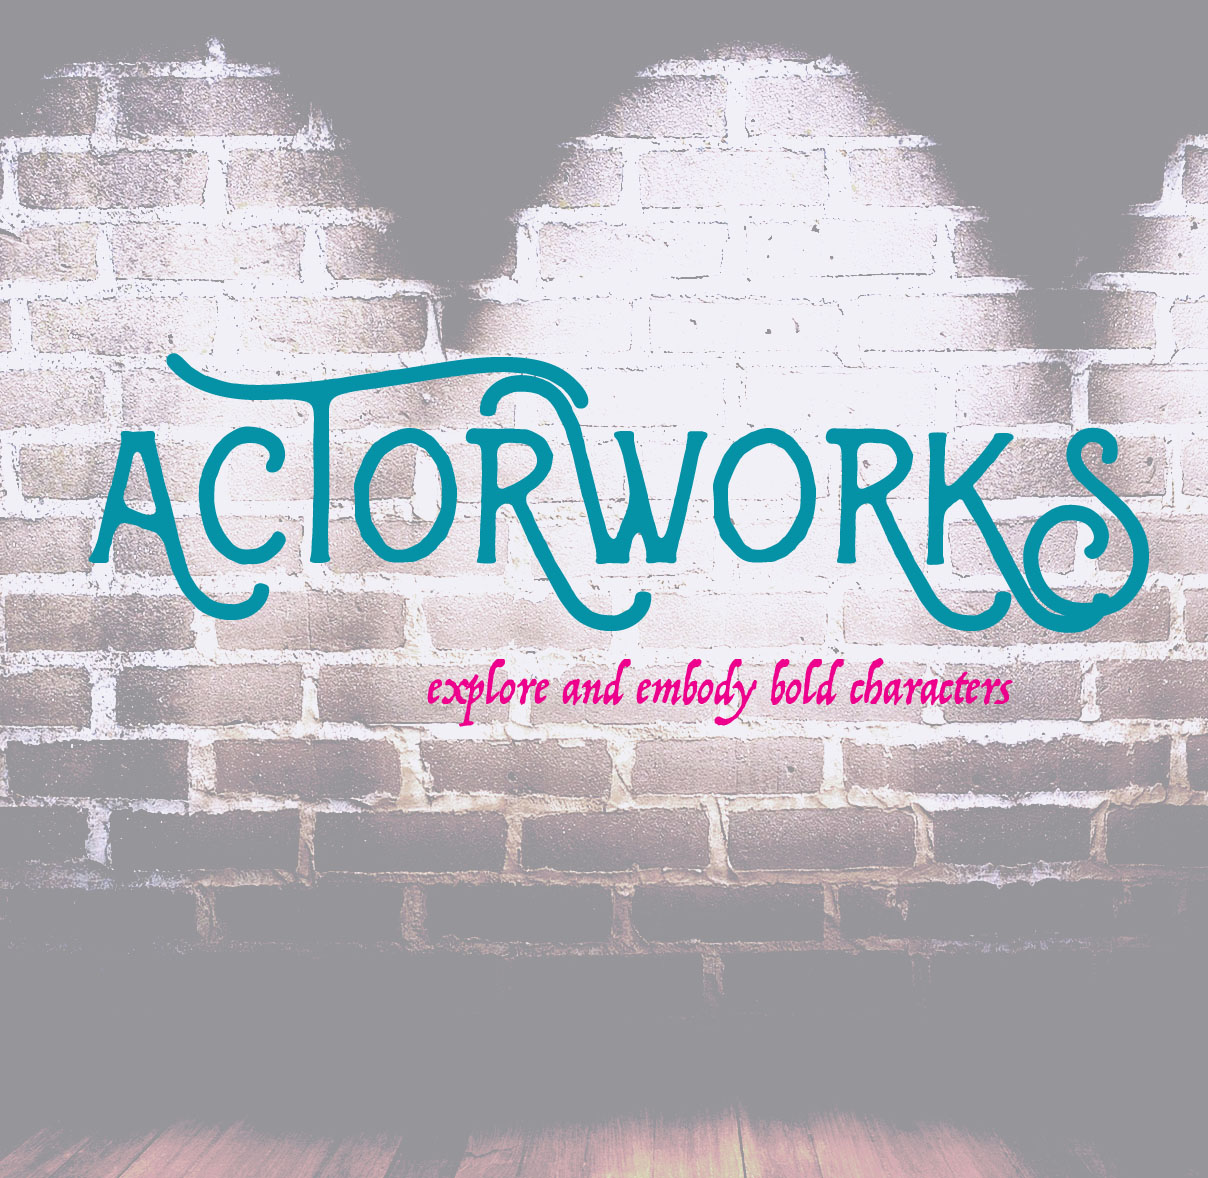 Actorworks: 7th-10th grade: June 19 – 30 from 9:00am – 12:30pm